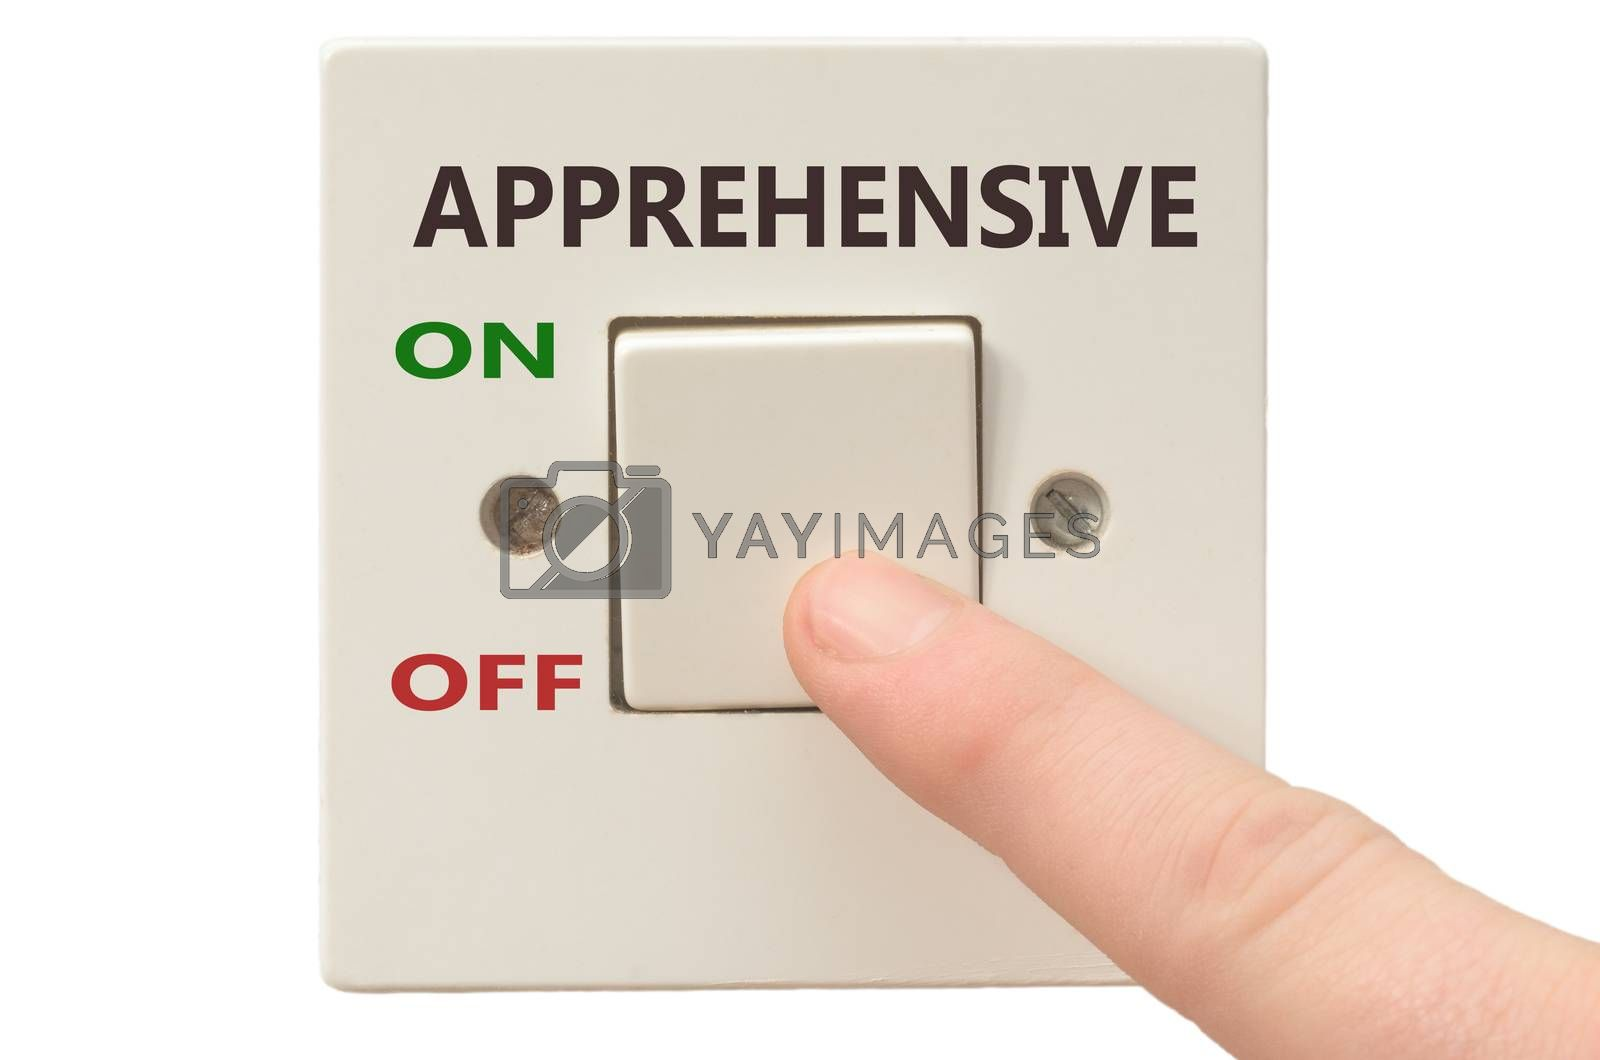 Turning off Apprehensive with finger on electrical switch